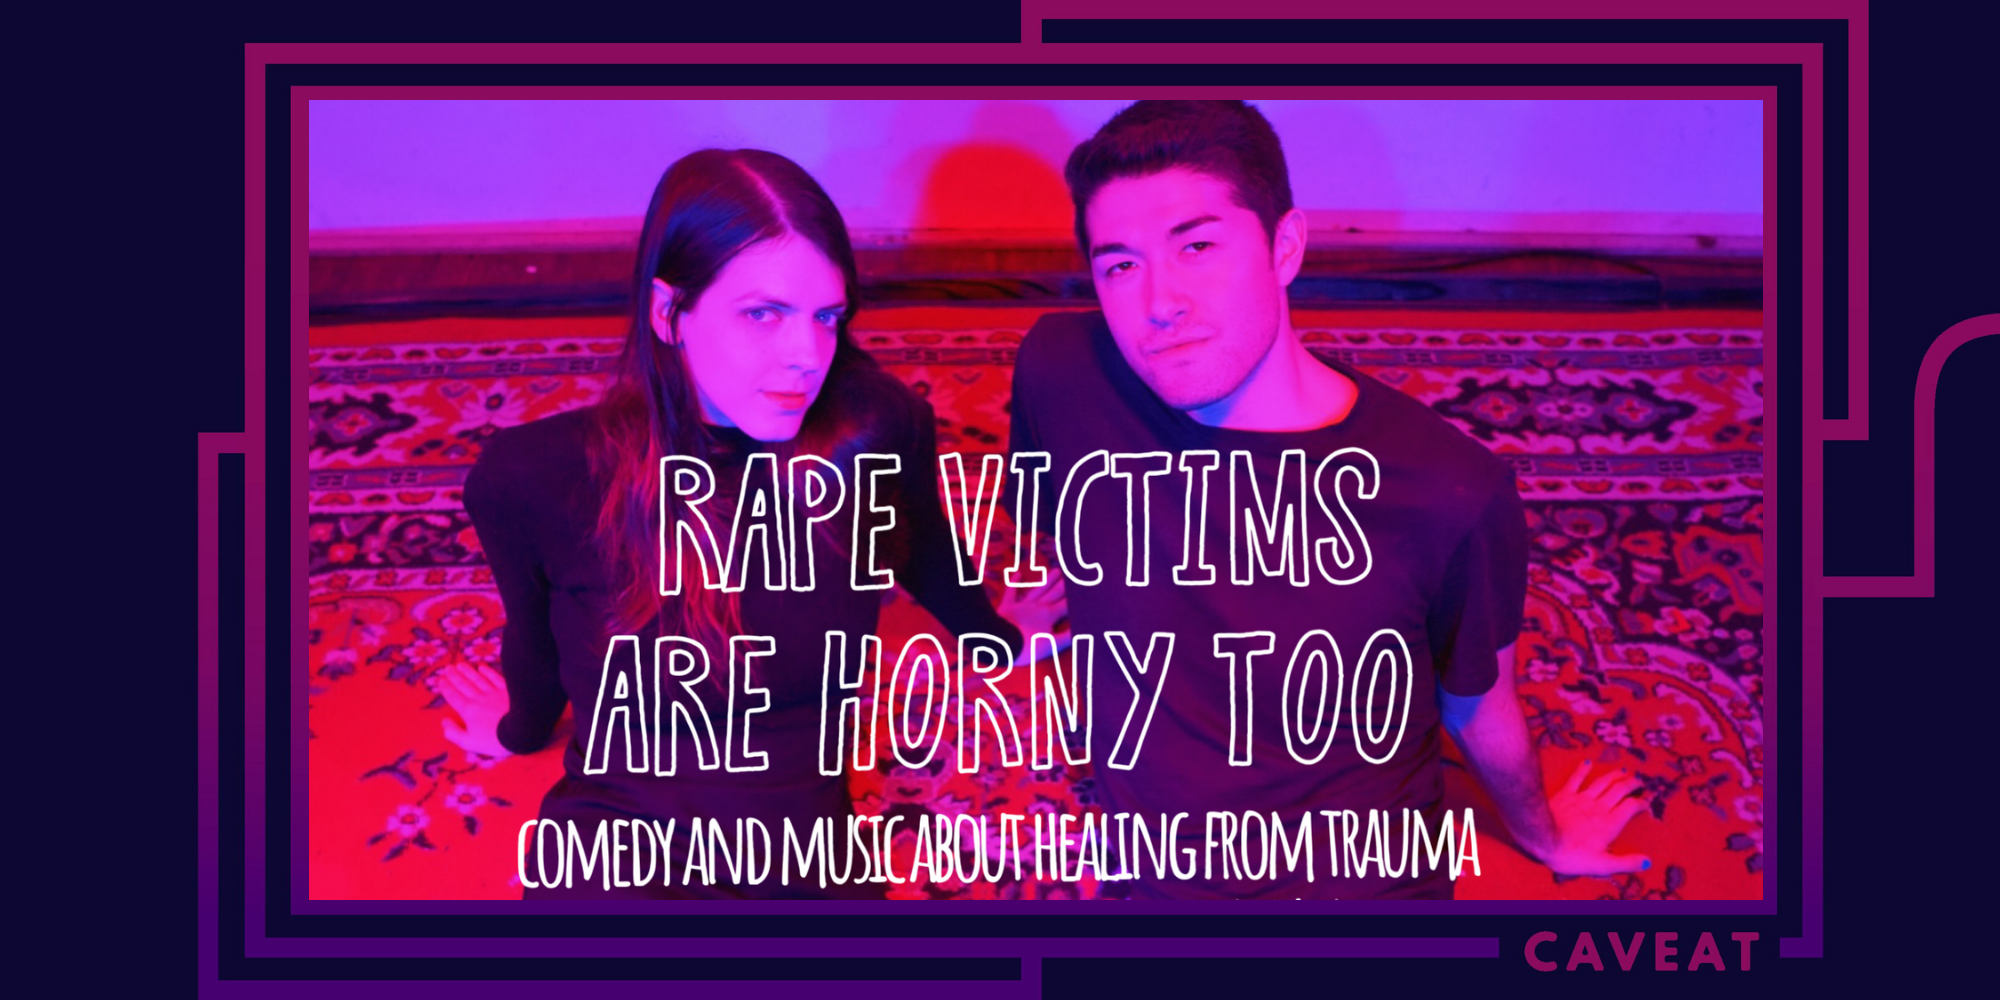 74305 image - Rape Victims Are Horny Too